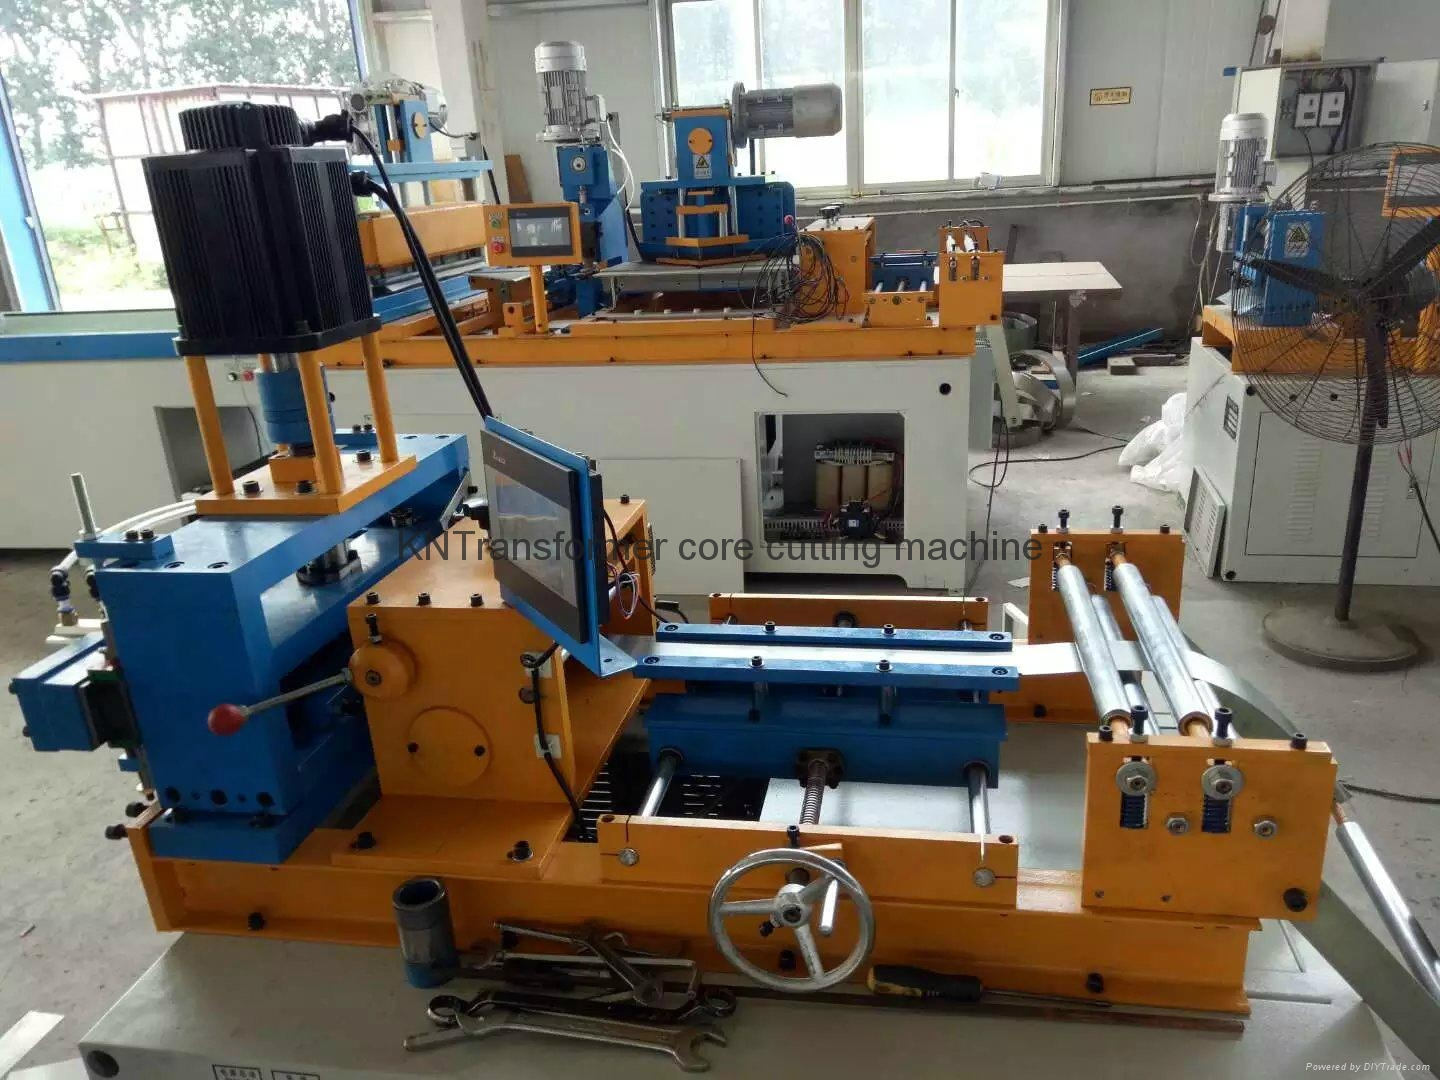 u bend core cutting machine